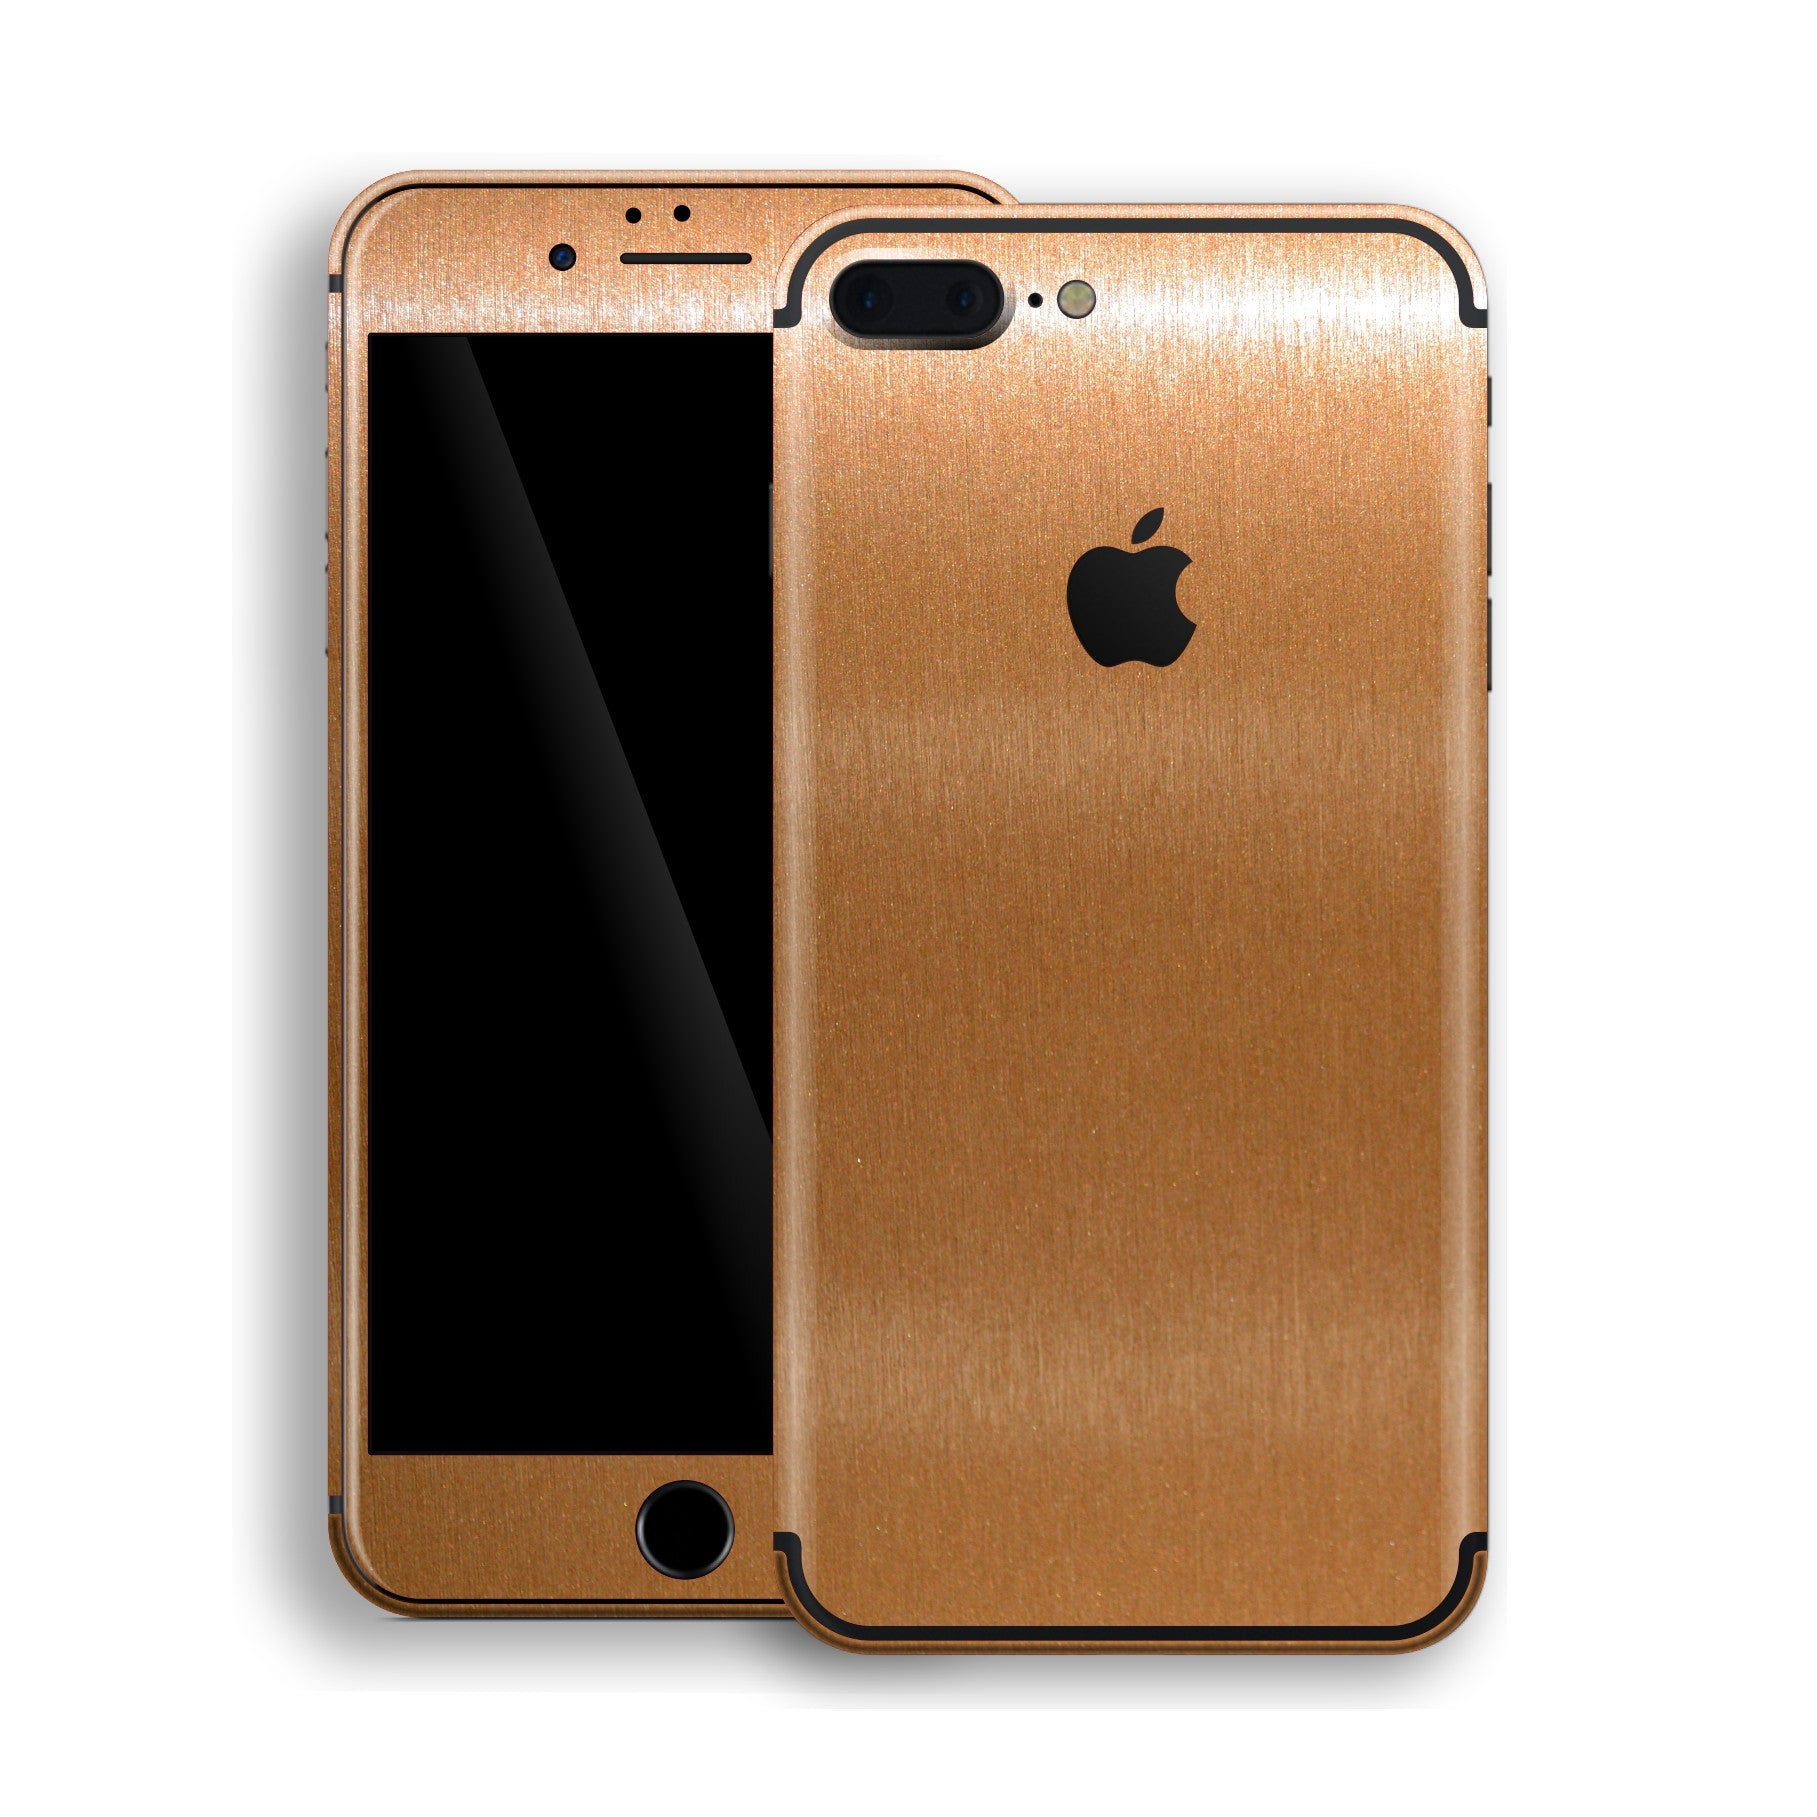 iPhone 7 Plus Brushed Copper Metallic Skin, Decal, Wrap, Protector, Cover by EasySkinz | EasySkinz.com